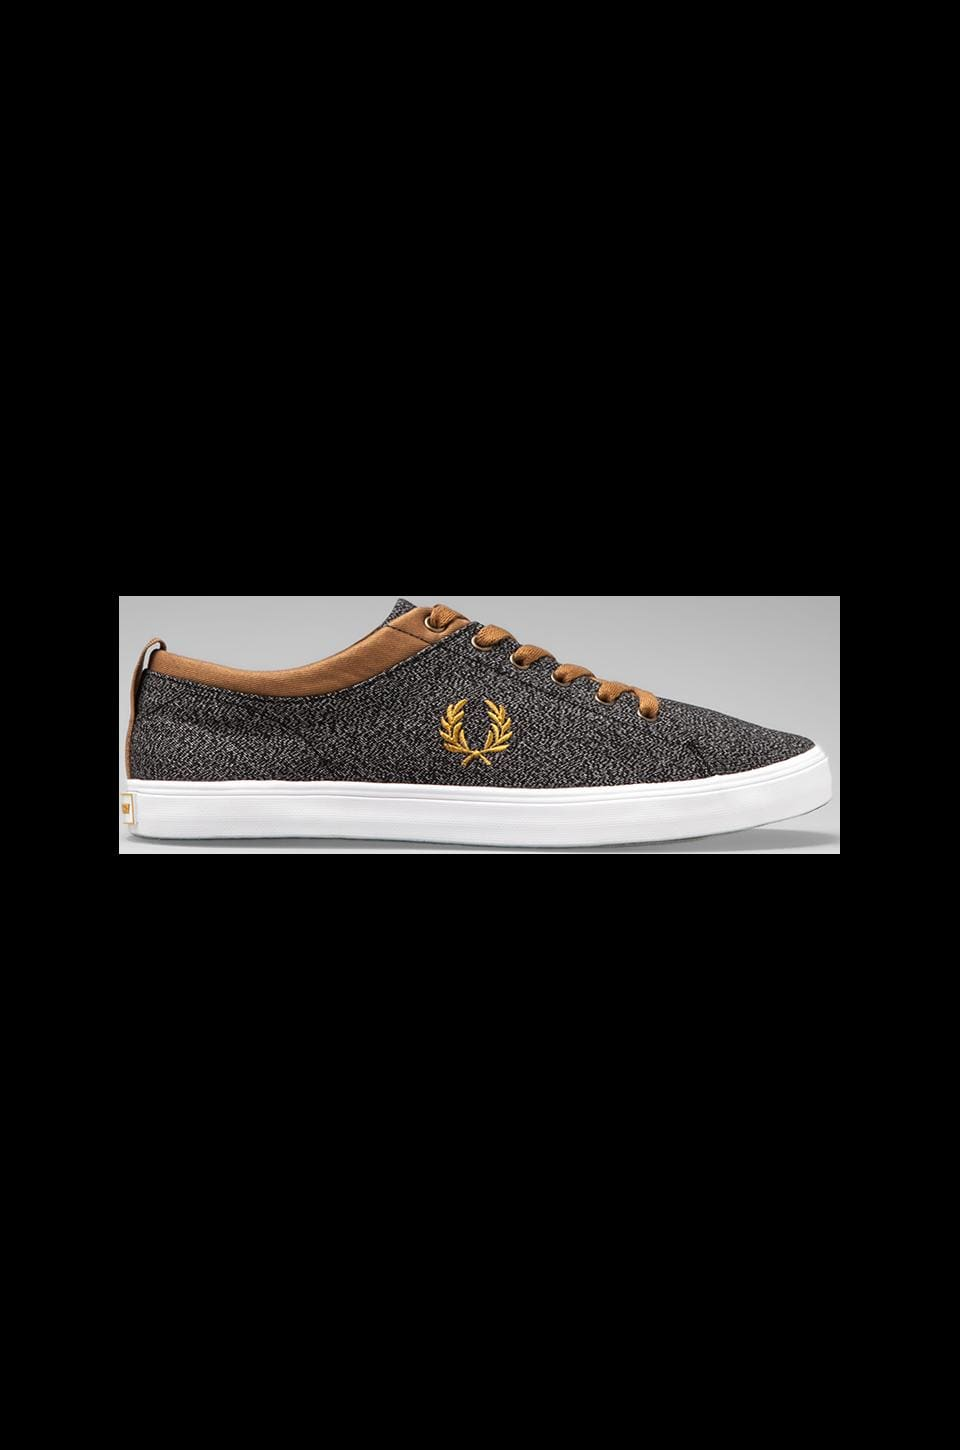 Fred Perry Hallam Twisted Chambray in Black/Mustard/Pepper